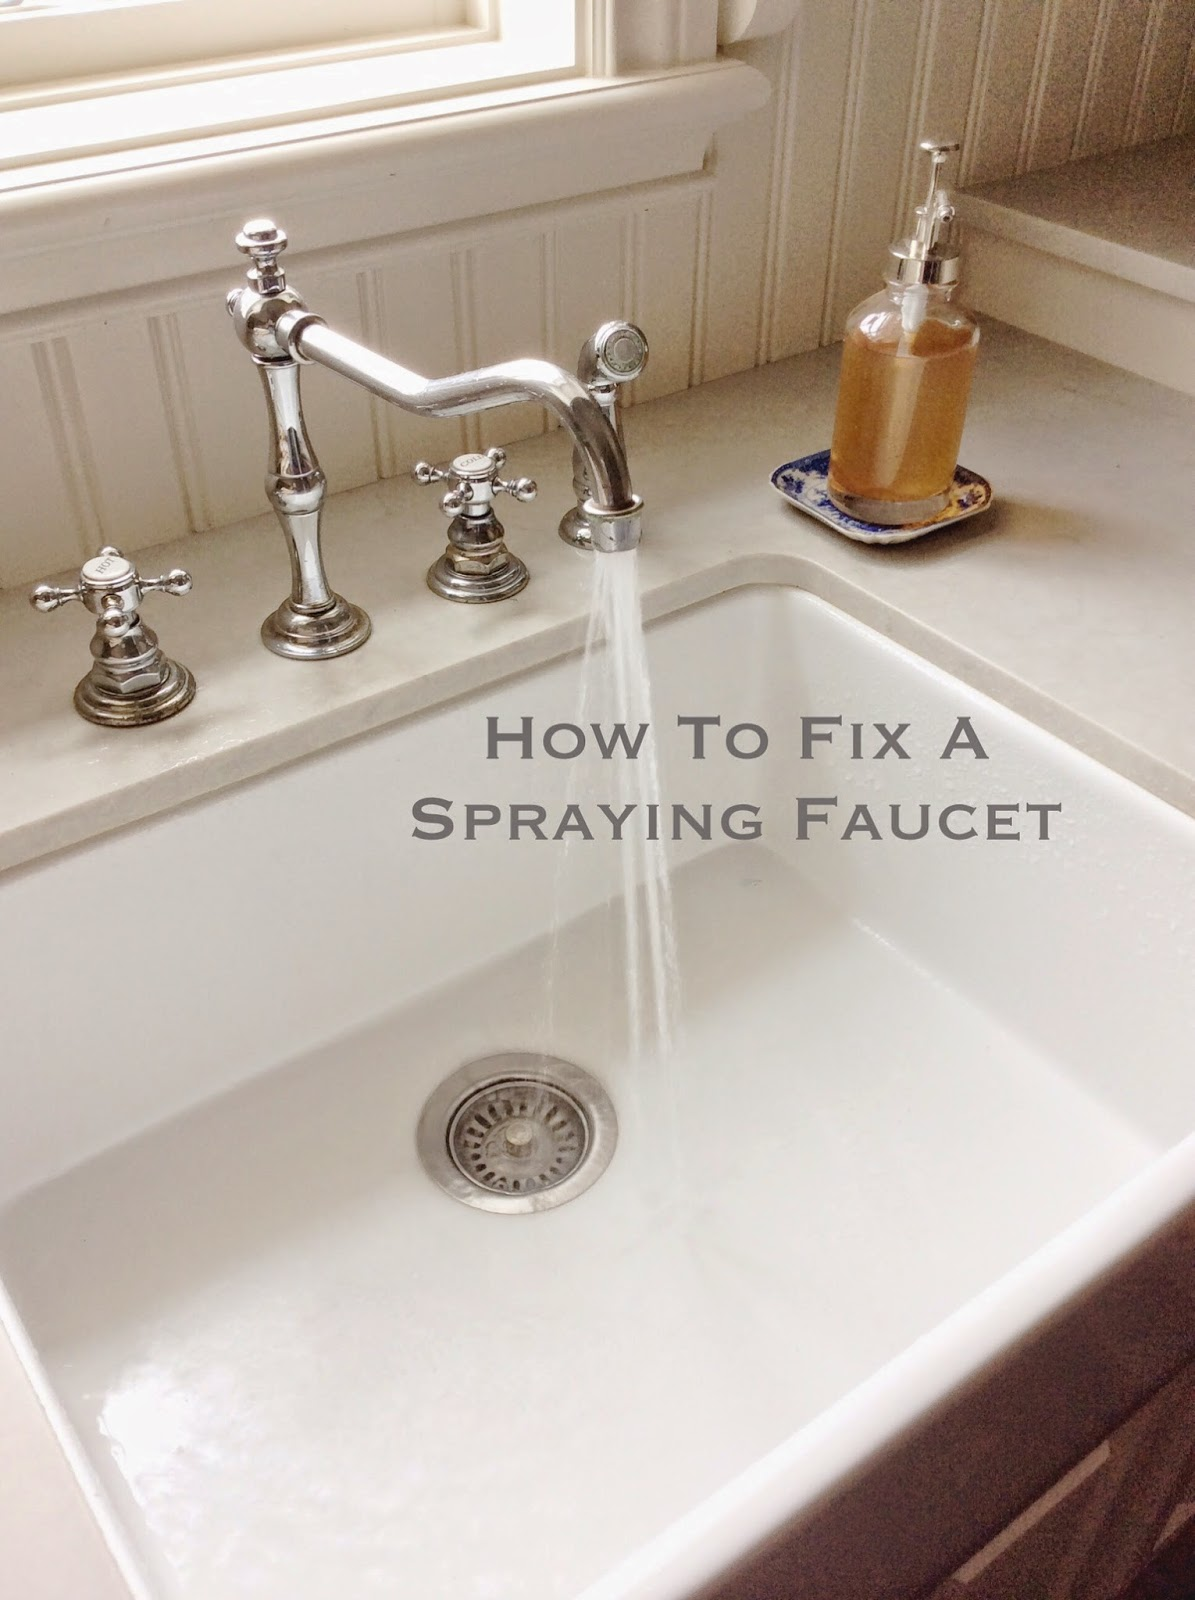 How To Fix A Spraying Faucet